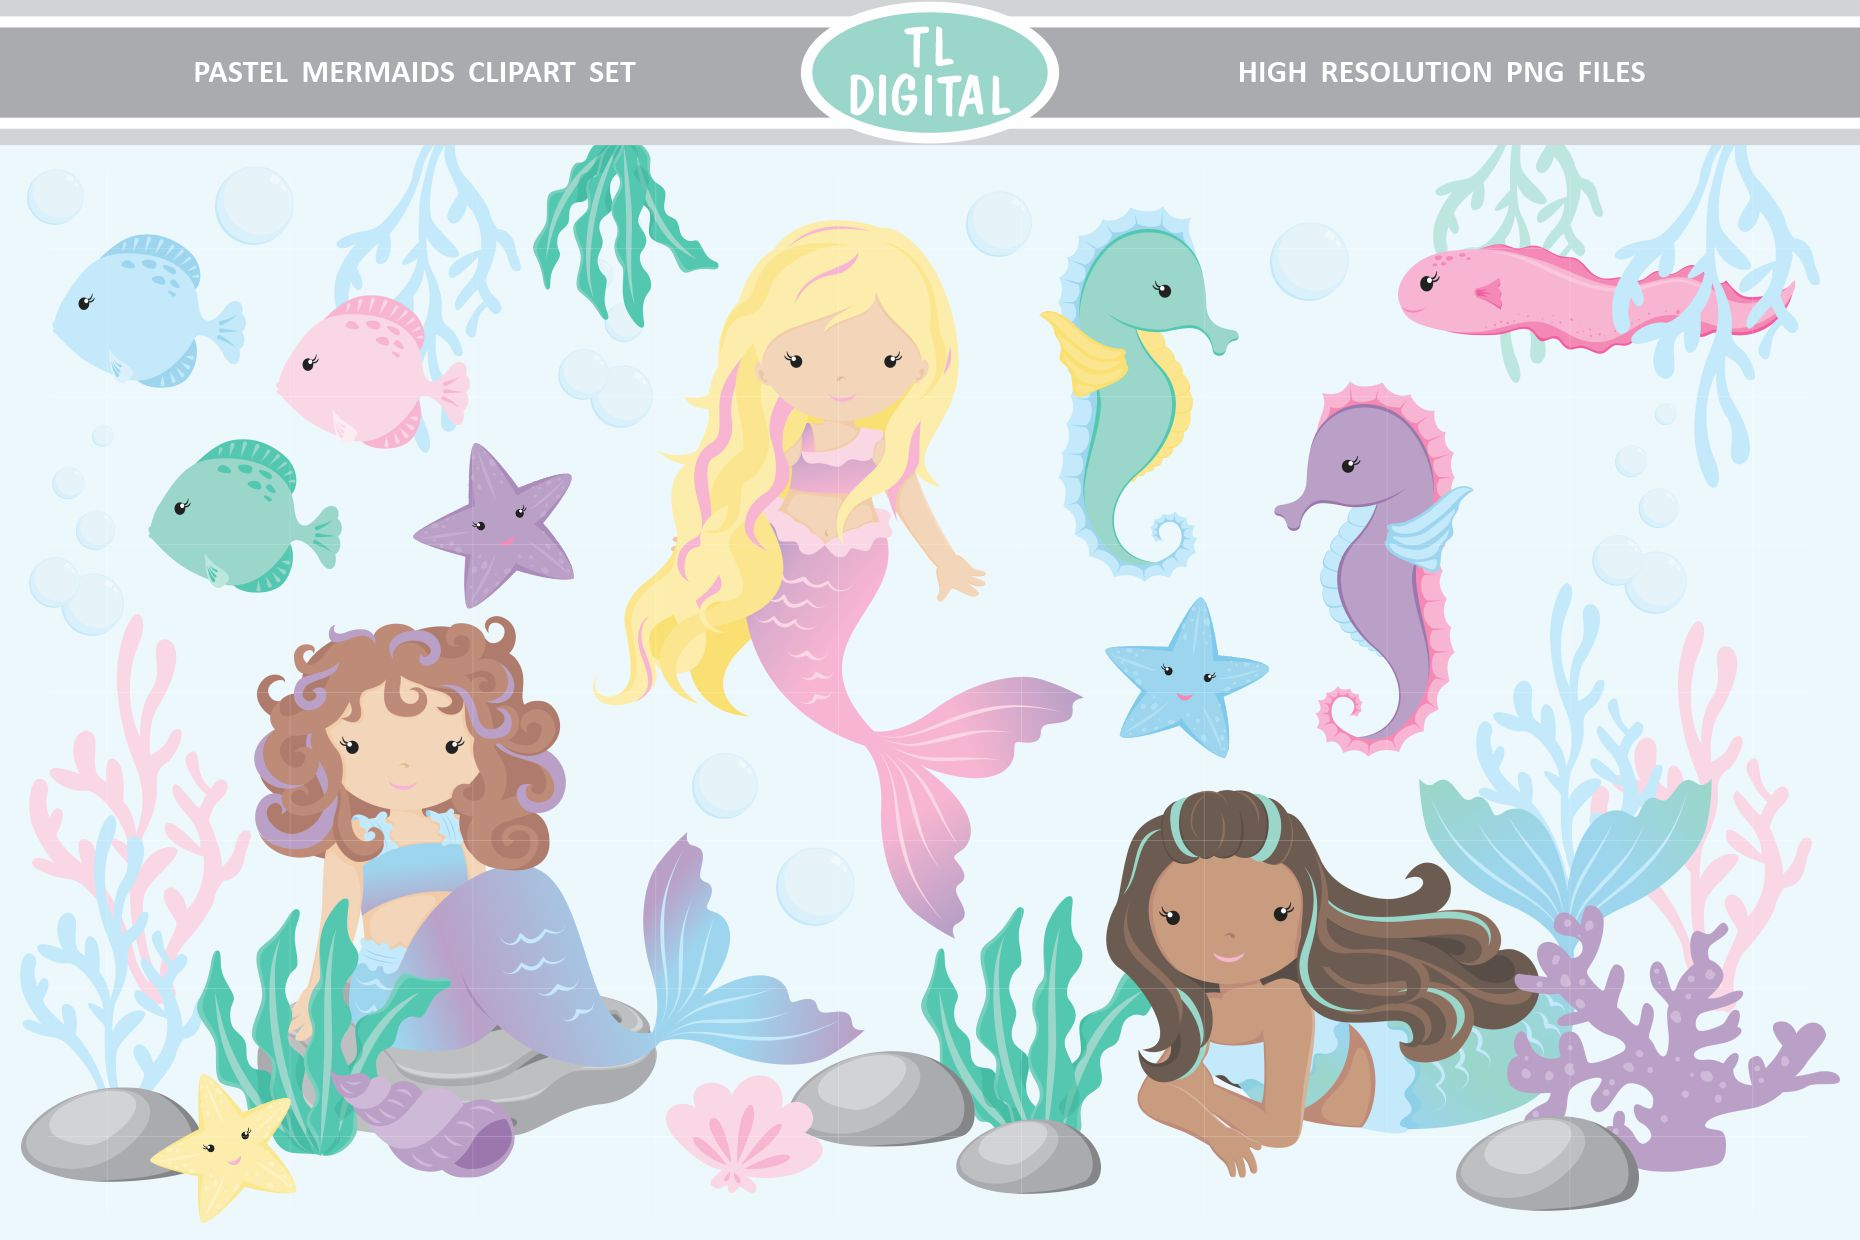 Pastel Mermaid Clipart Set 29 High Resolution PNG Graphics example image 1